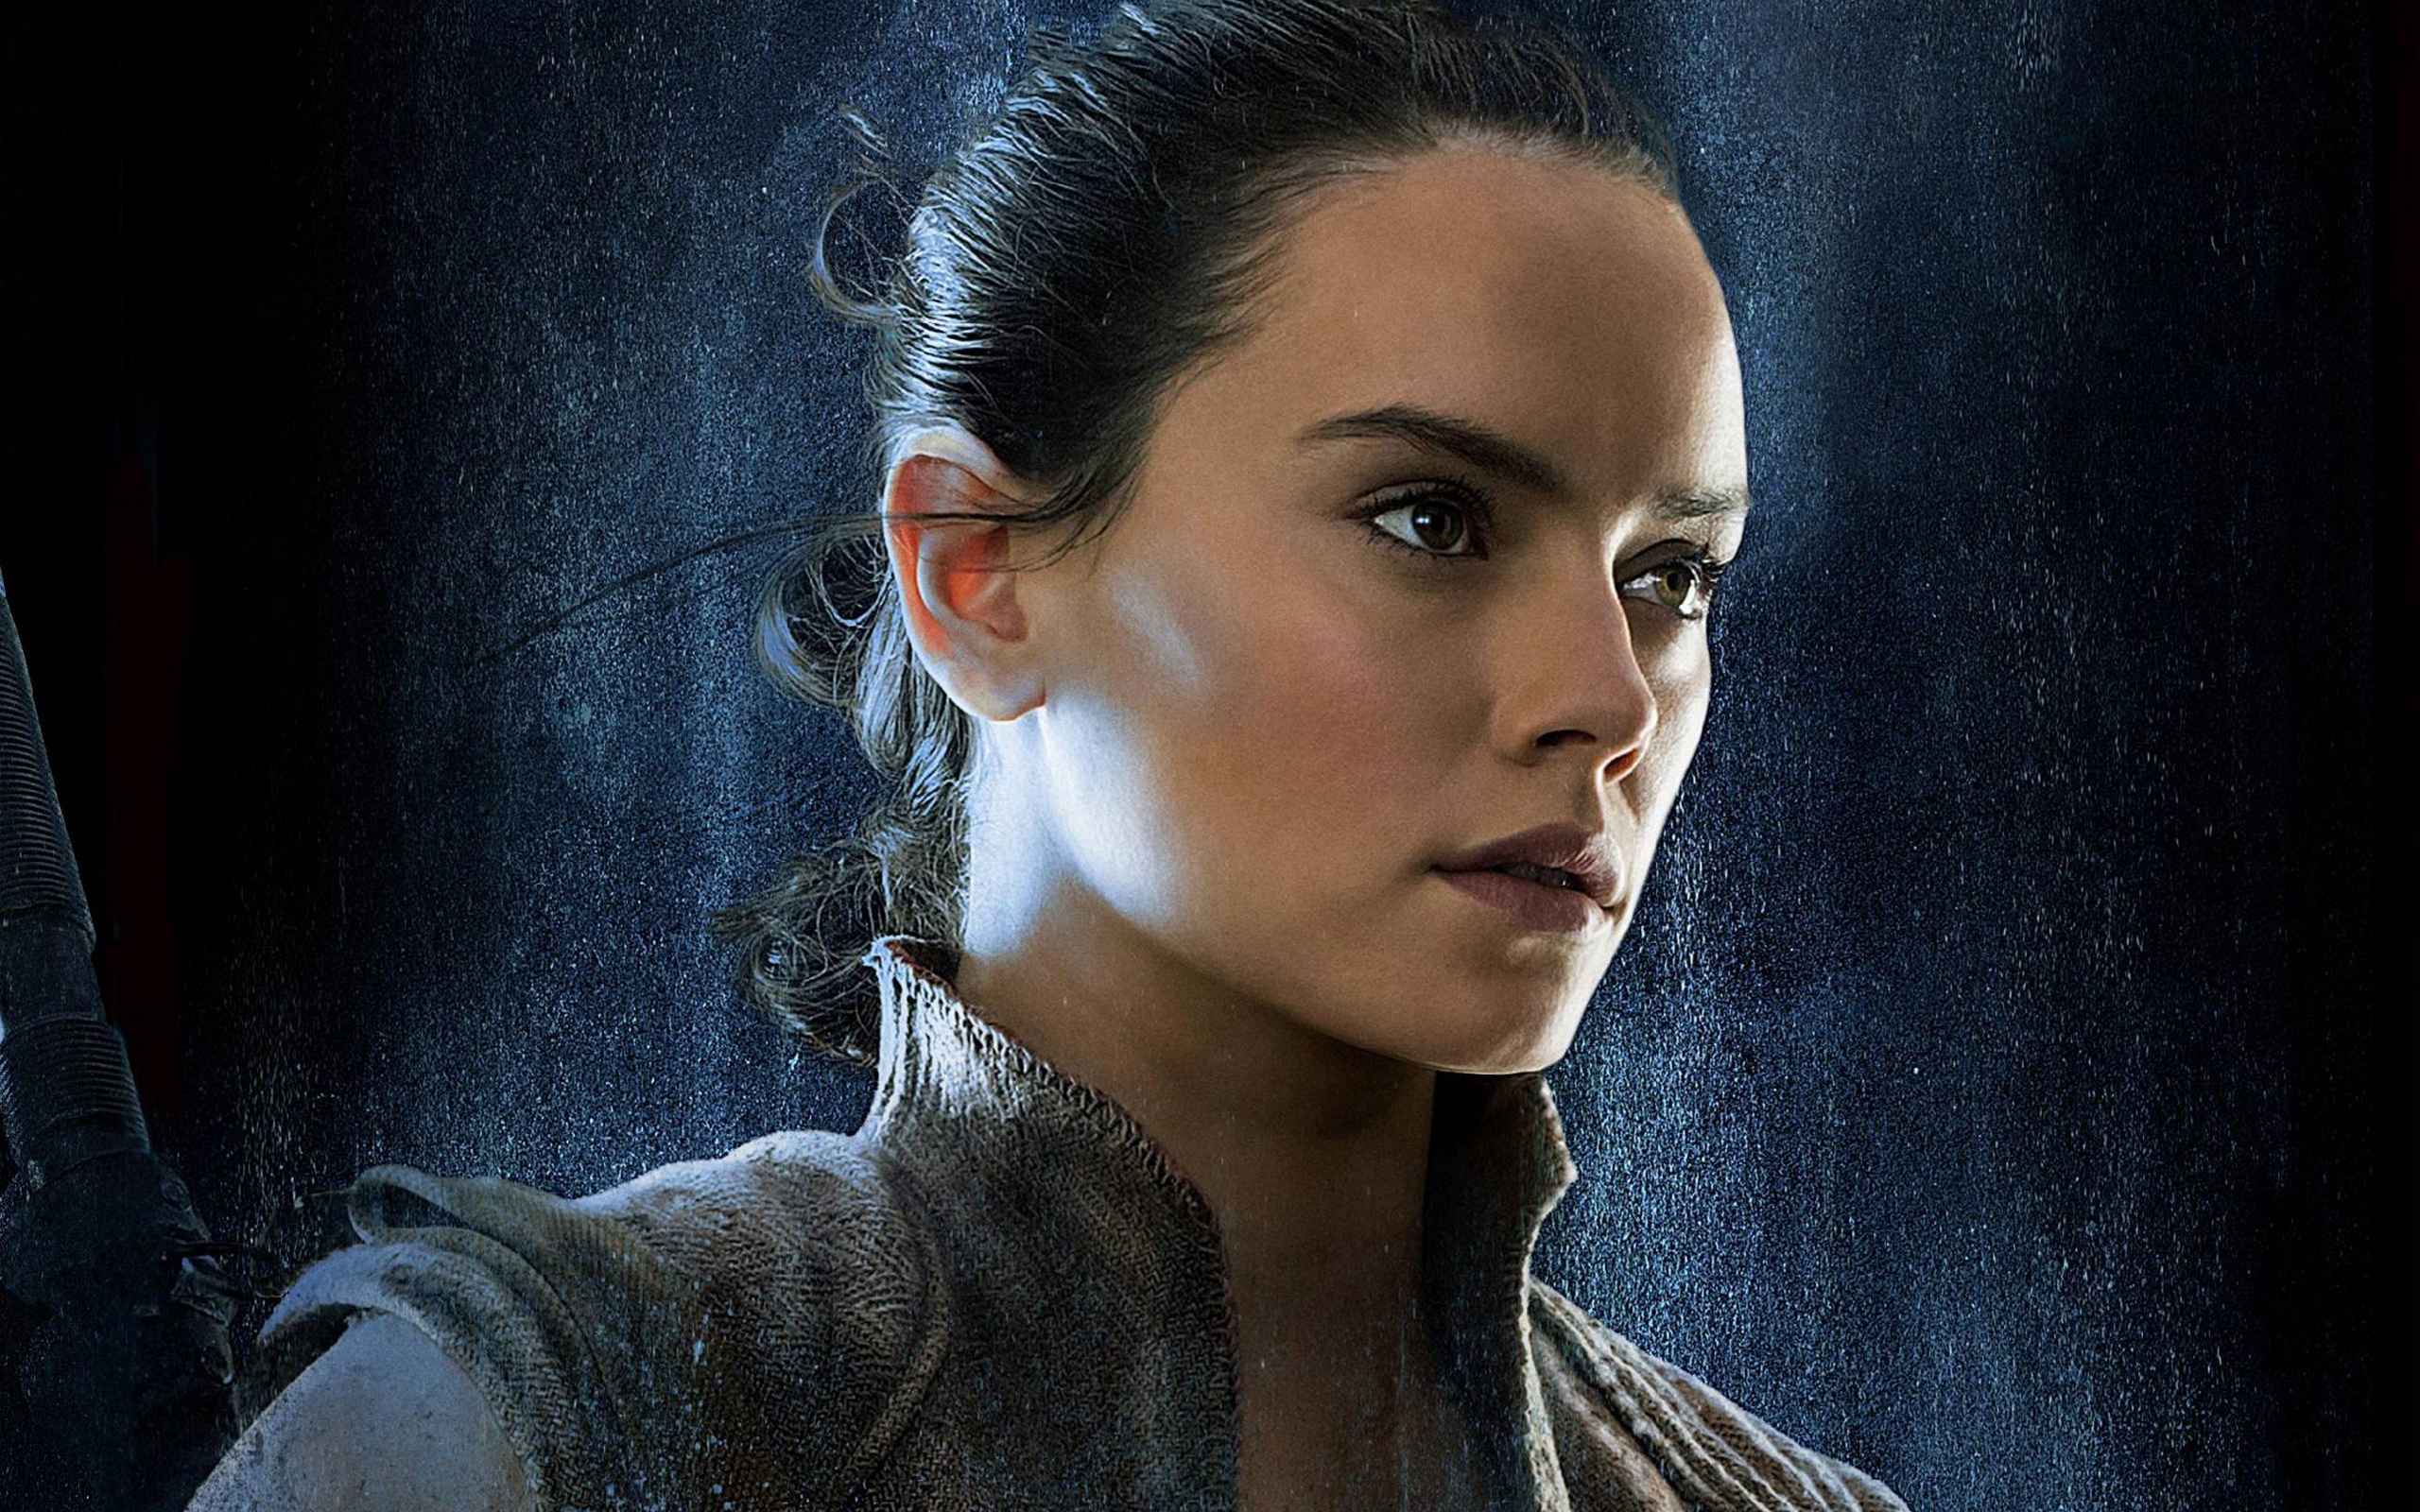 Rey Wallpaper Star Wars Posted By Christopher Thompson